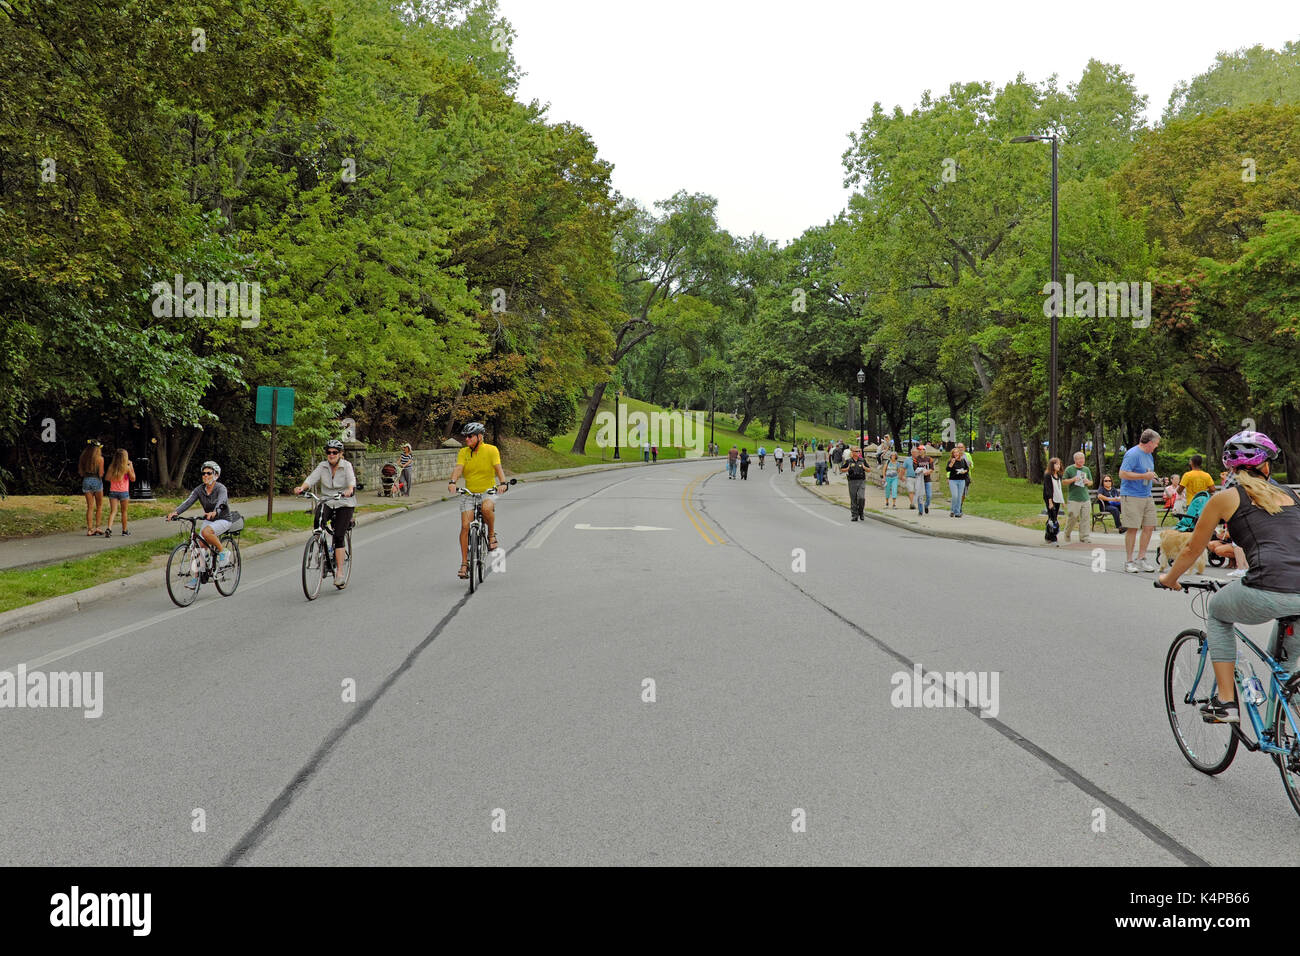 Pedestrians and bikers recreating outdoors in Rockefeller Park in Cleveland, Ohio, USA. - Stock Image